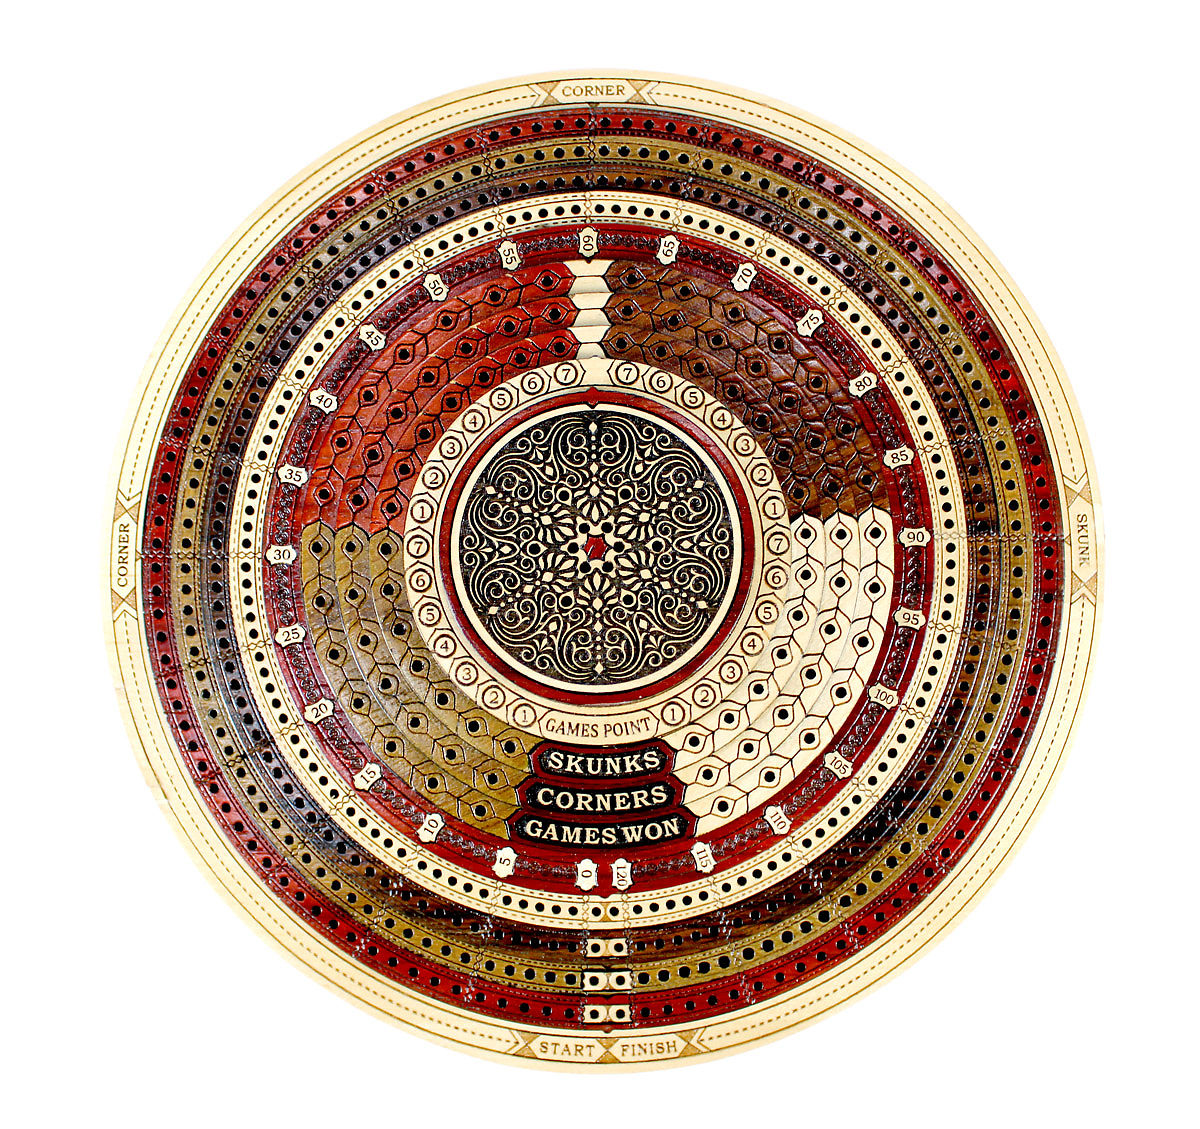 Top view of 3d multi layers round cribbage board with inlaid 4 tracks